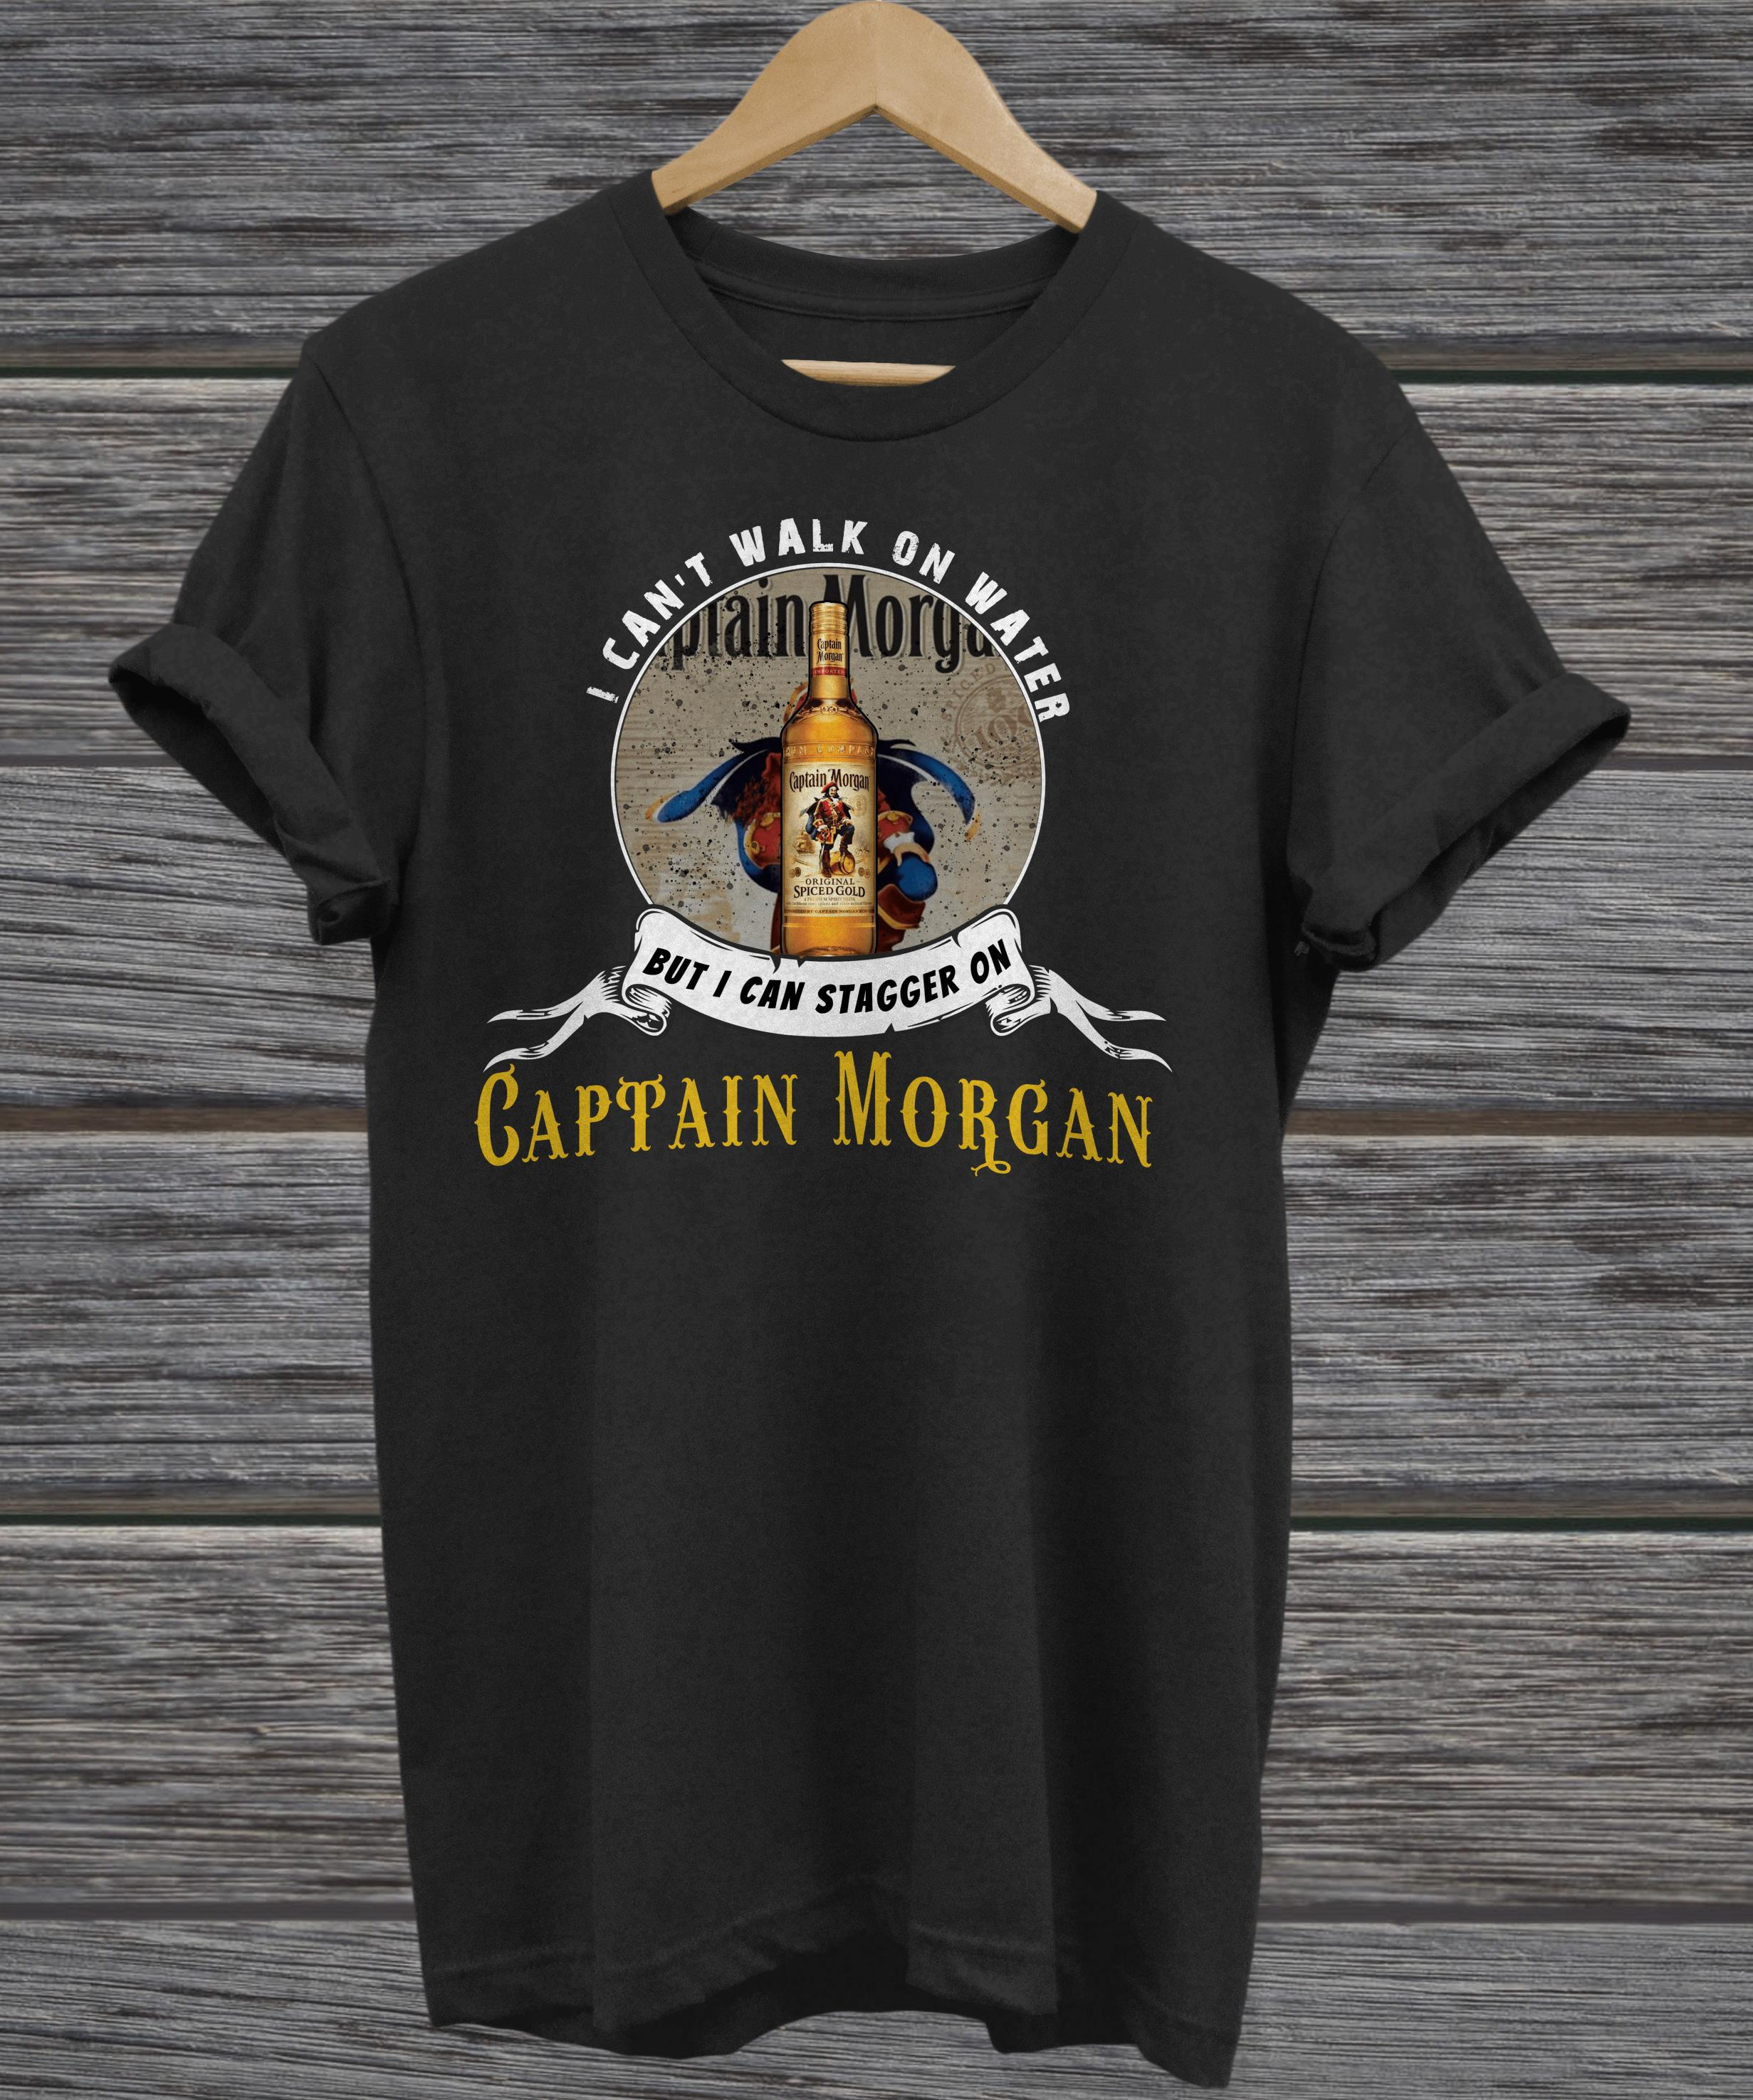 I can not walk on water but I can stagger on Captain Morgan ladies tee